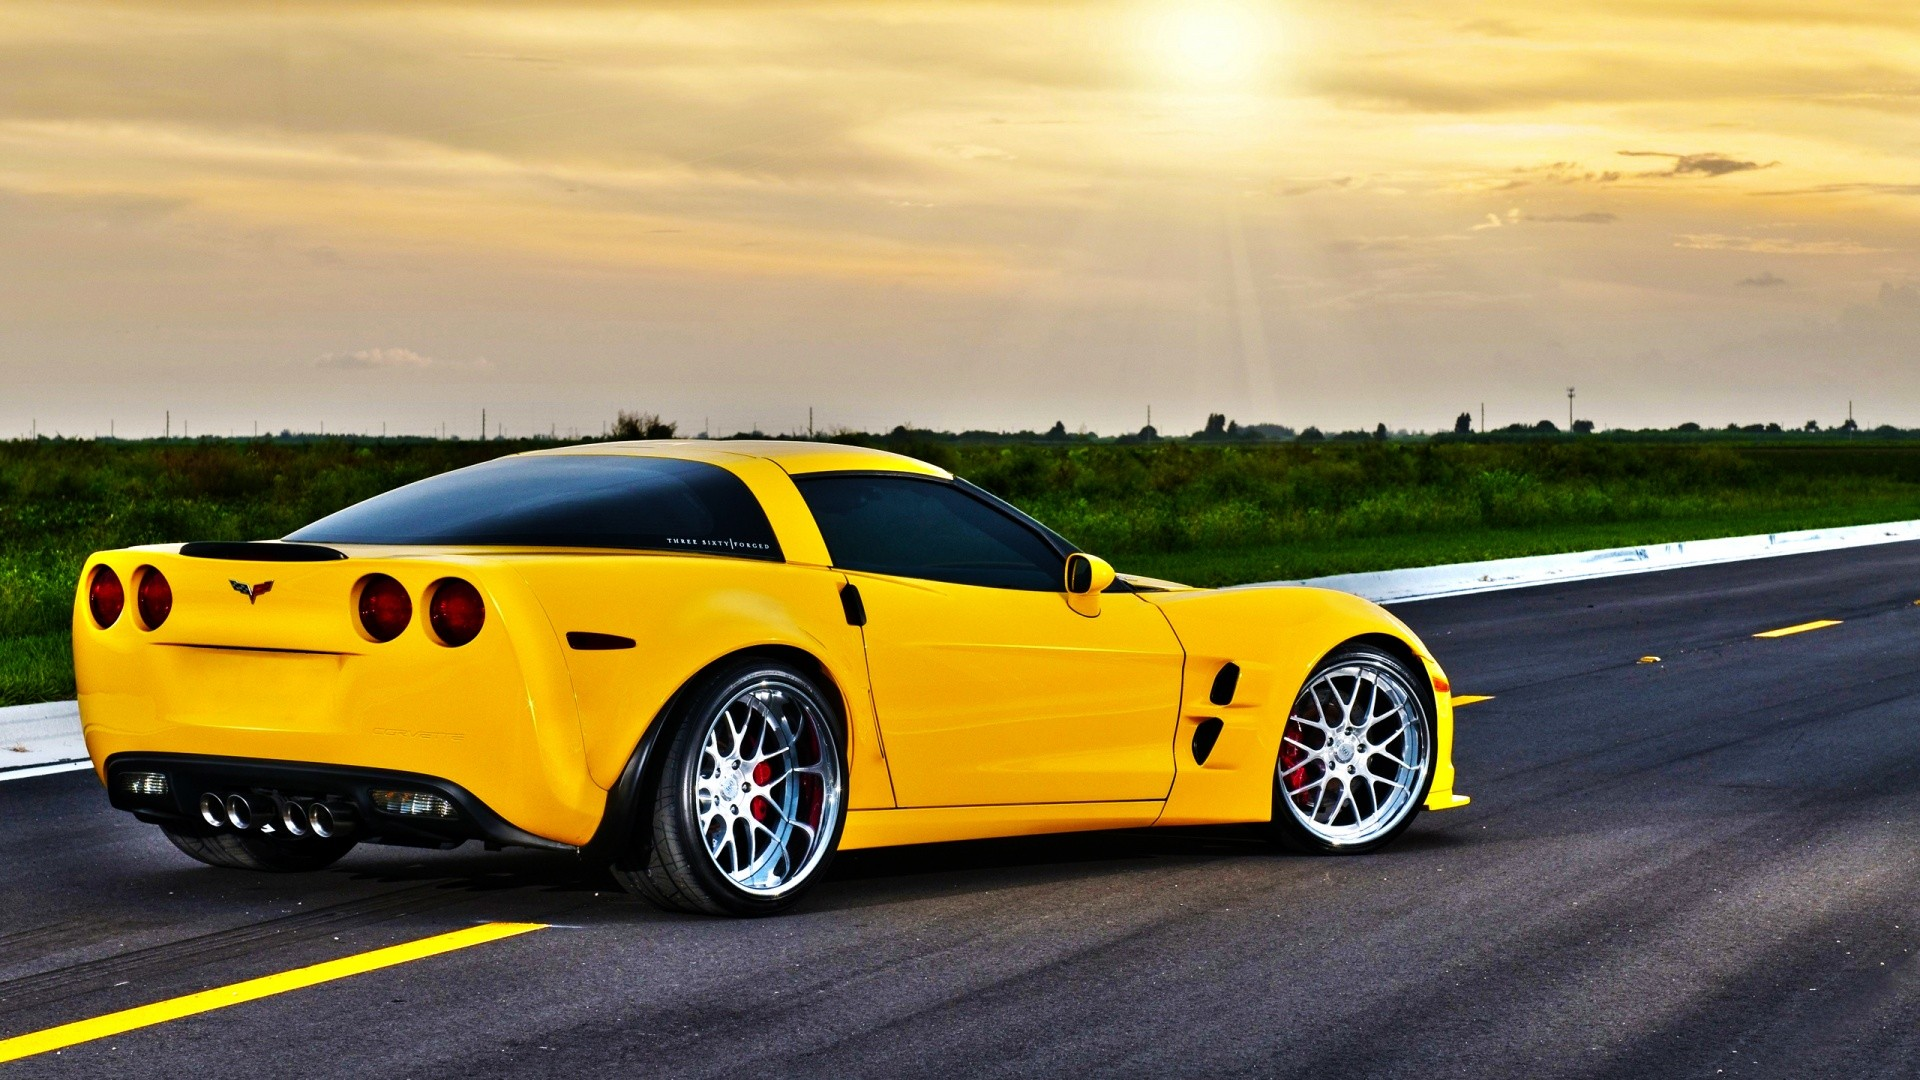 HD Corvette Wallpapers Background Photos Mac Wallpapers Tablet 1920x1080